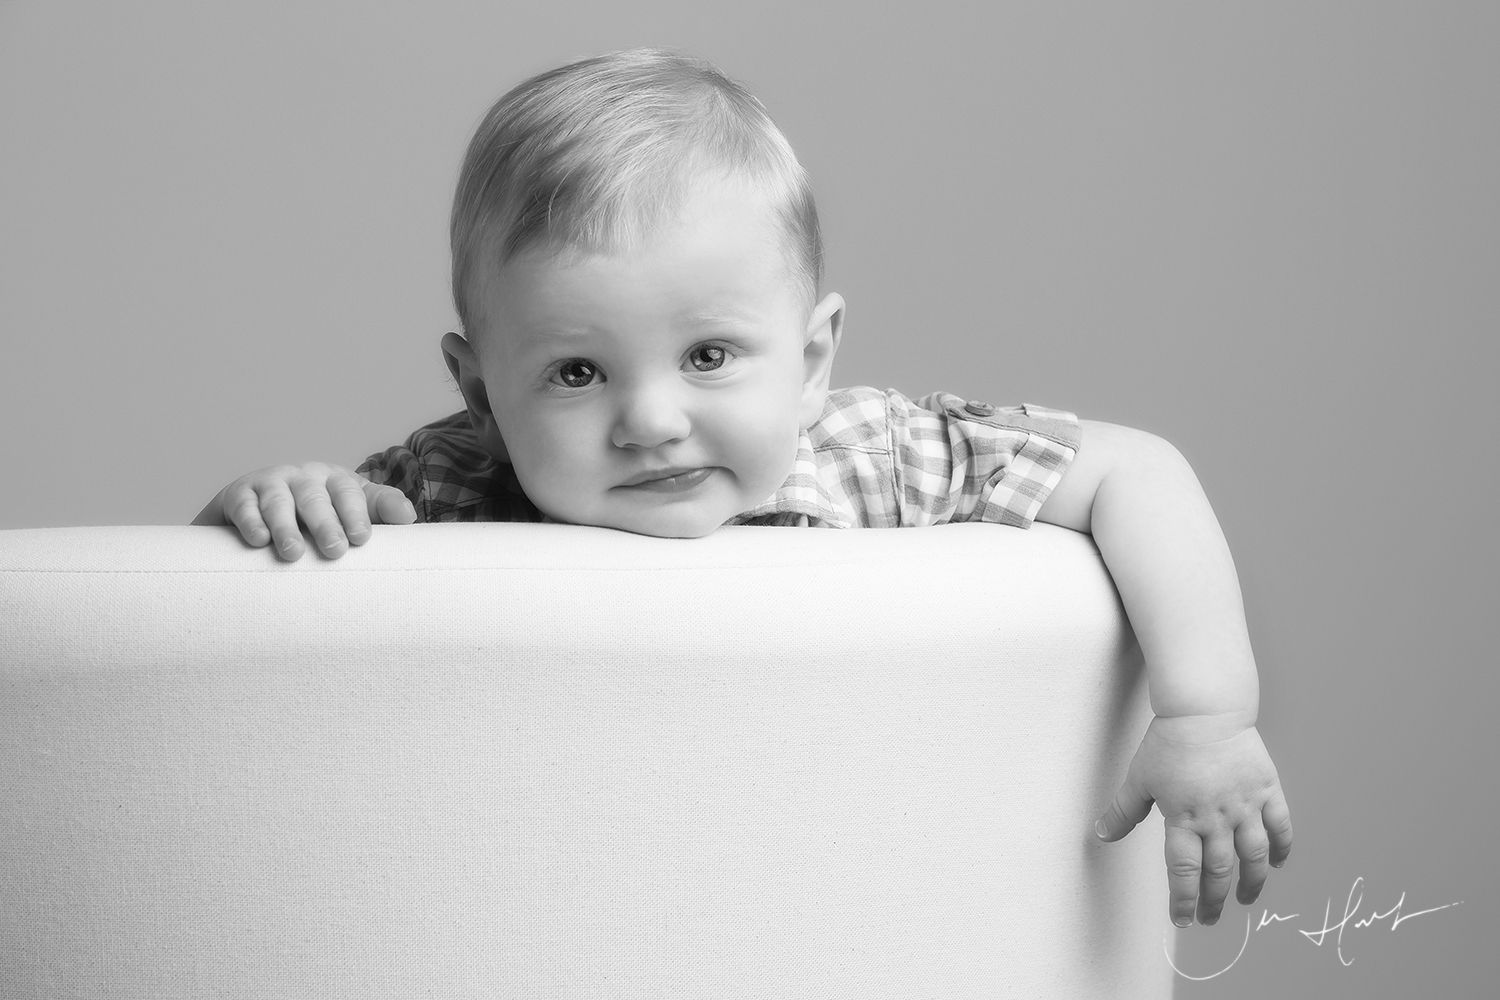 Baby-Toddler-Family-Photography-Jen-Hart-Isaac- 18May19_012